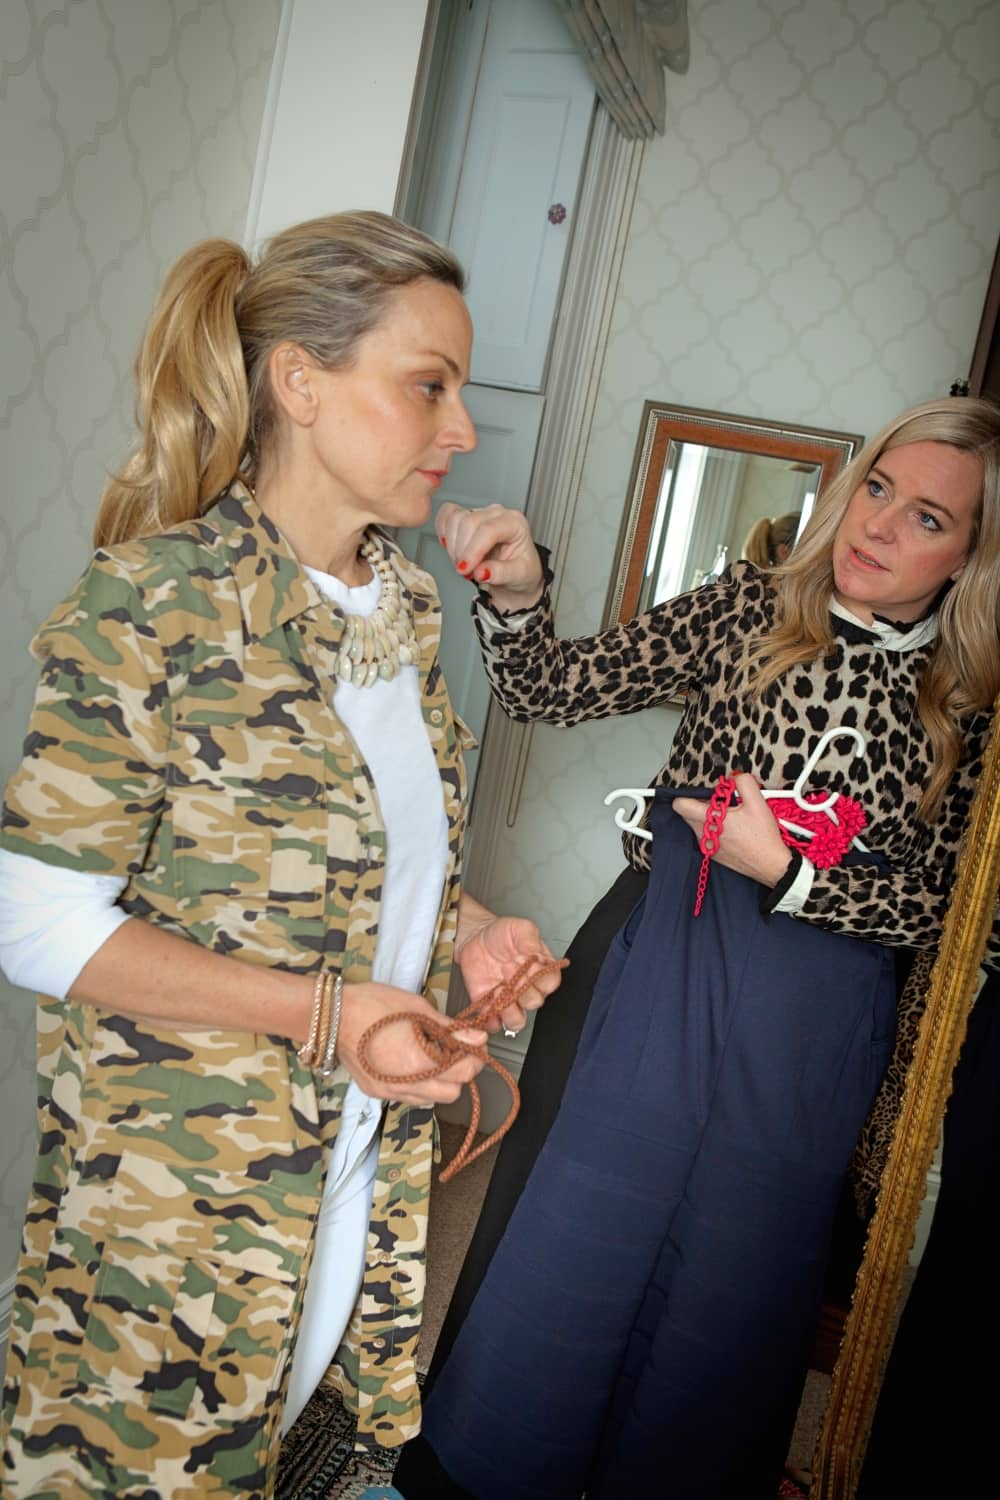 Claire McNestry Styling wardrobe edit, personal styling and colour and shape consultation